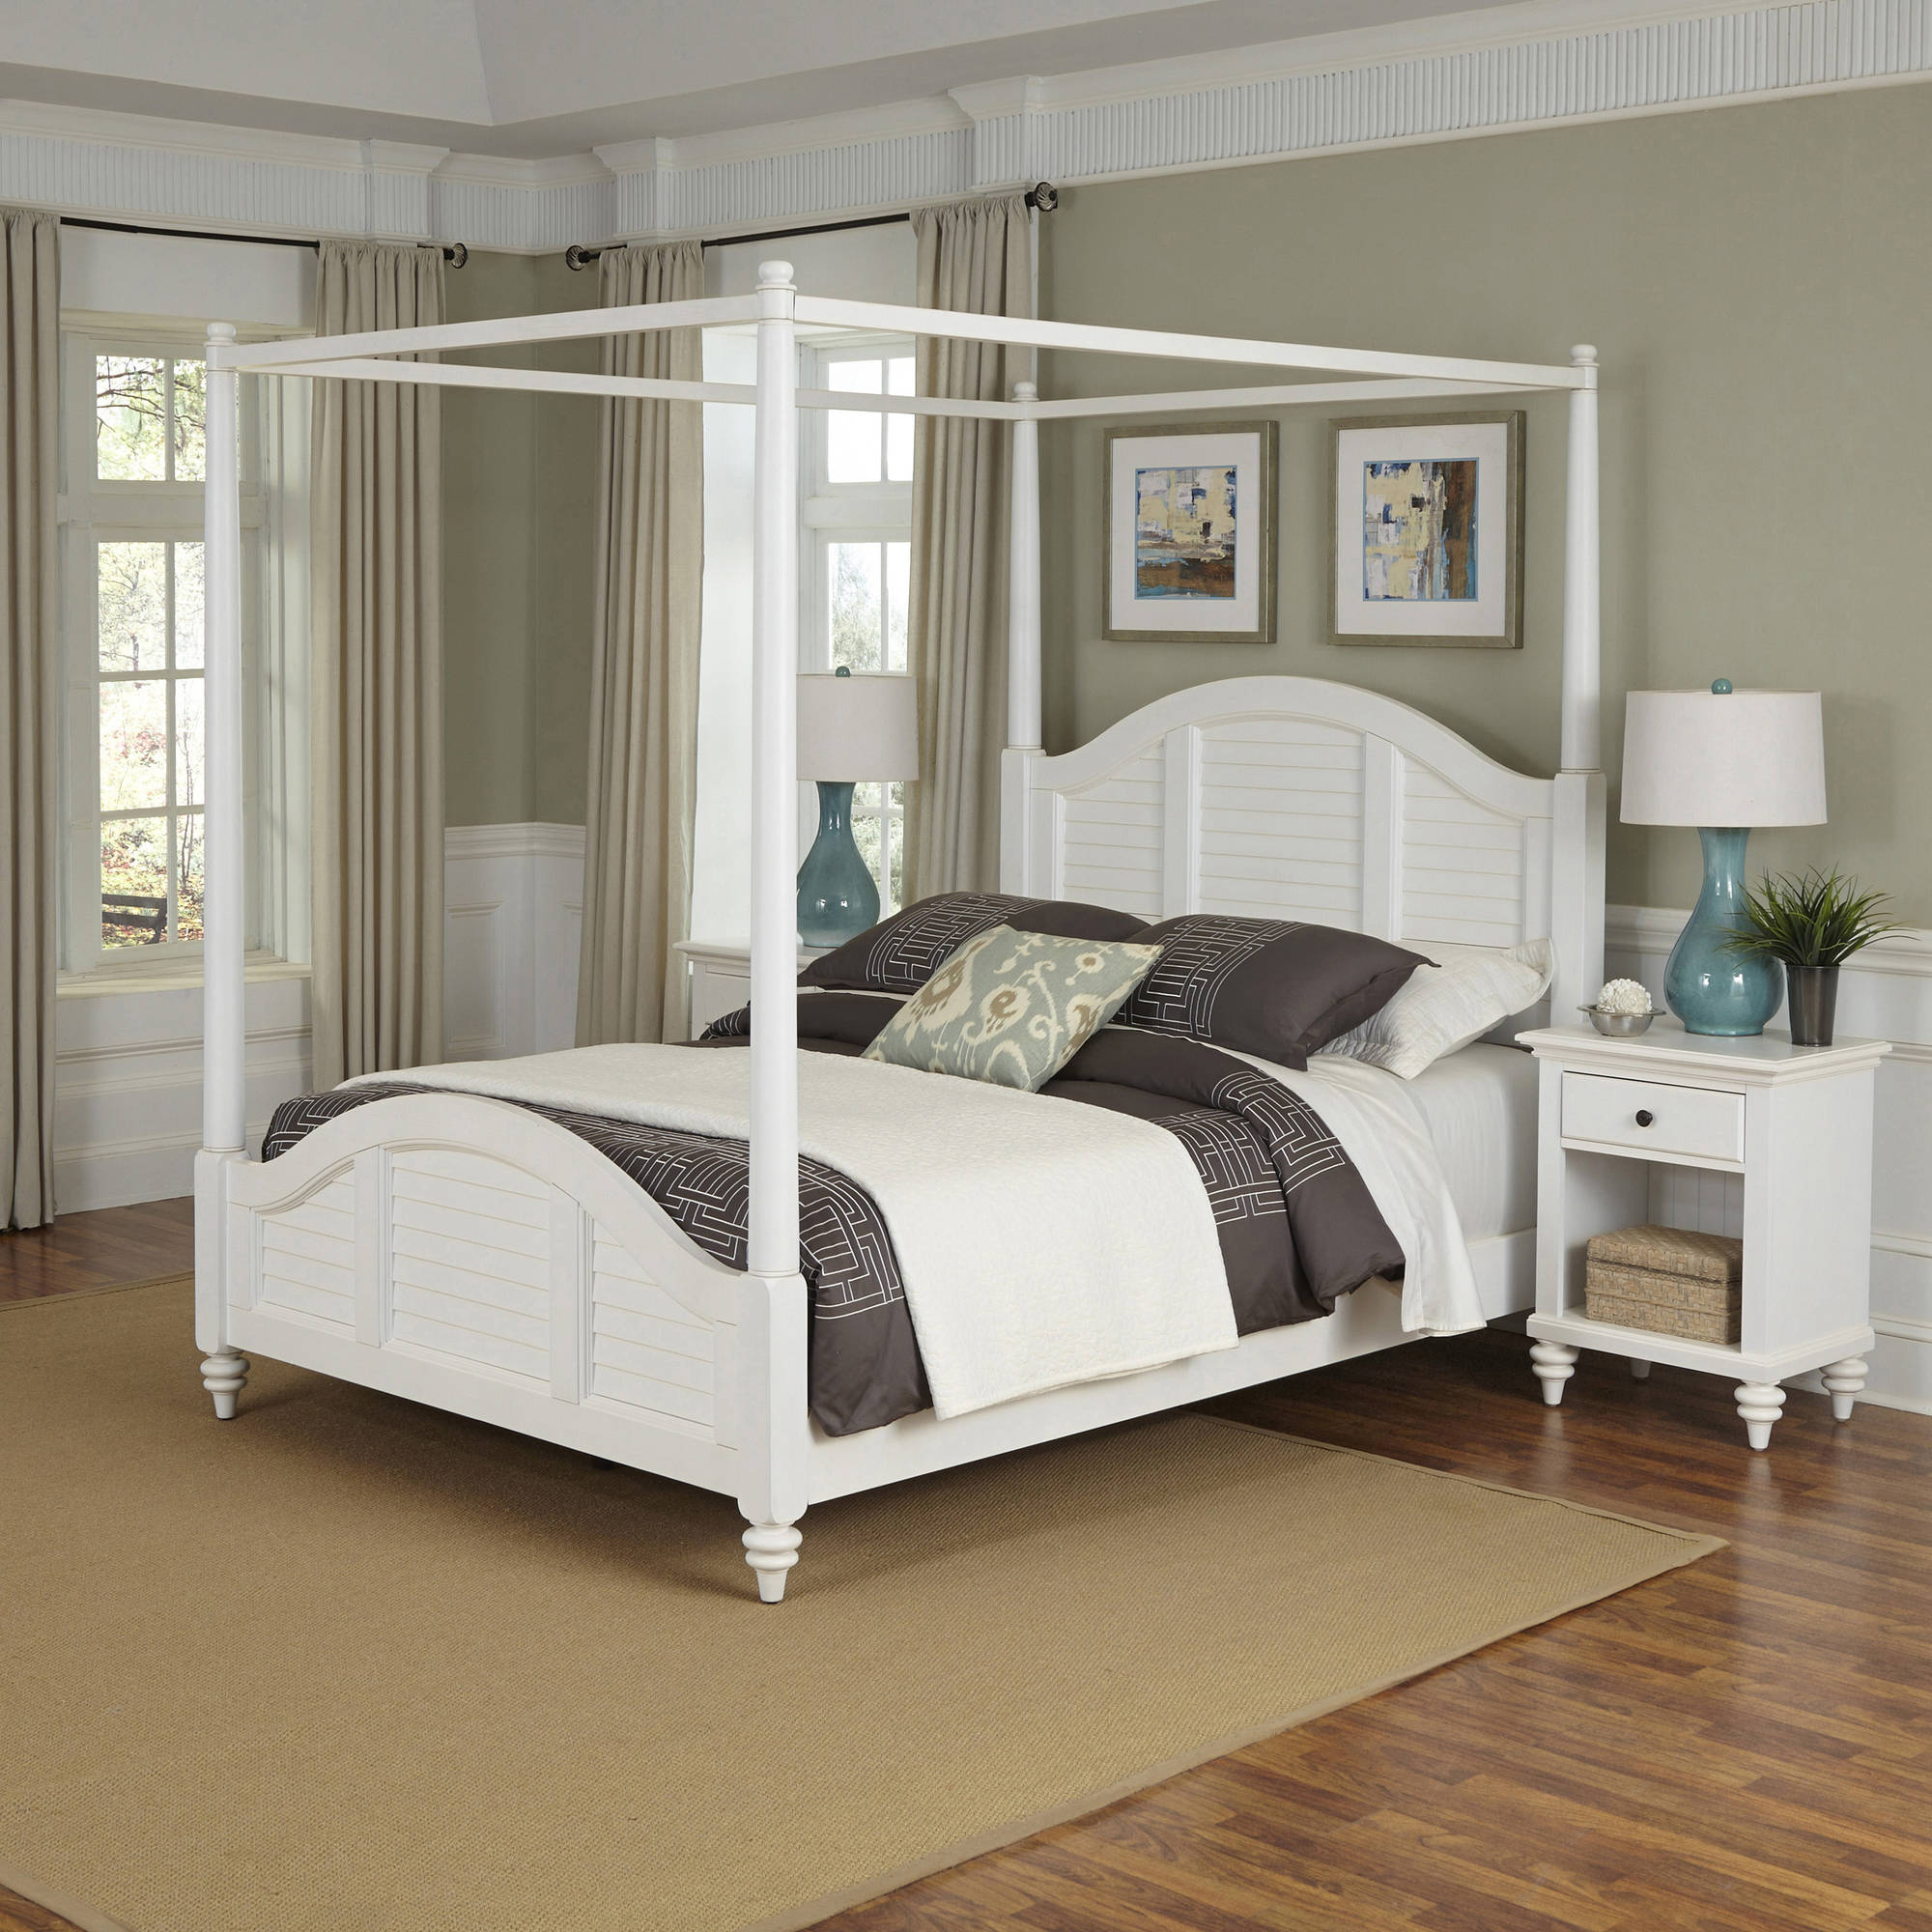 Home Styles Bermuda Queen Canopy Bed and 2 Night Stands, Multiple Colors